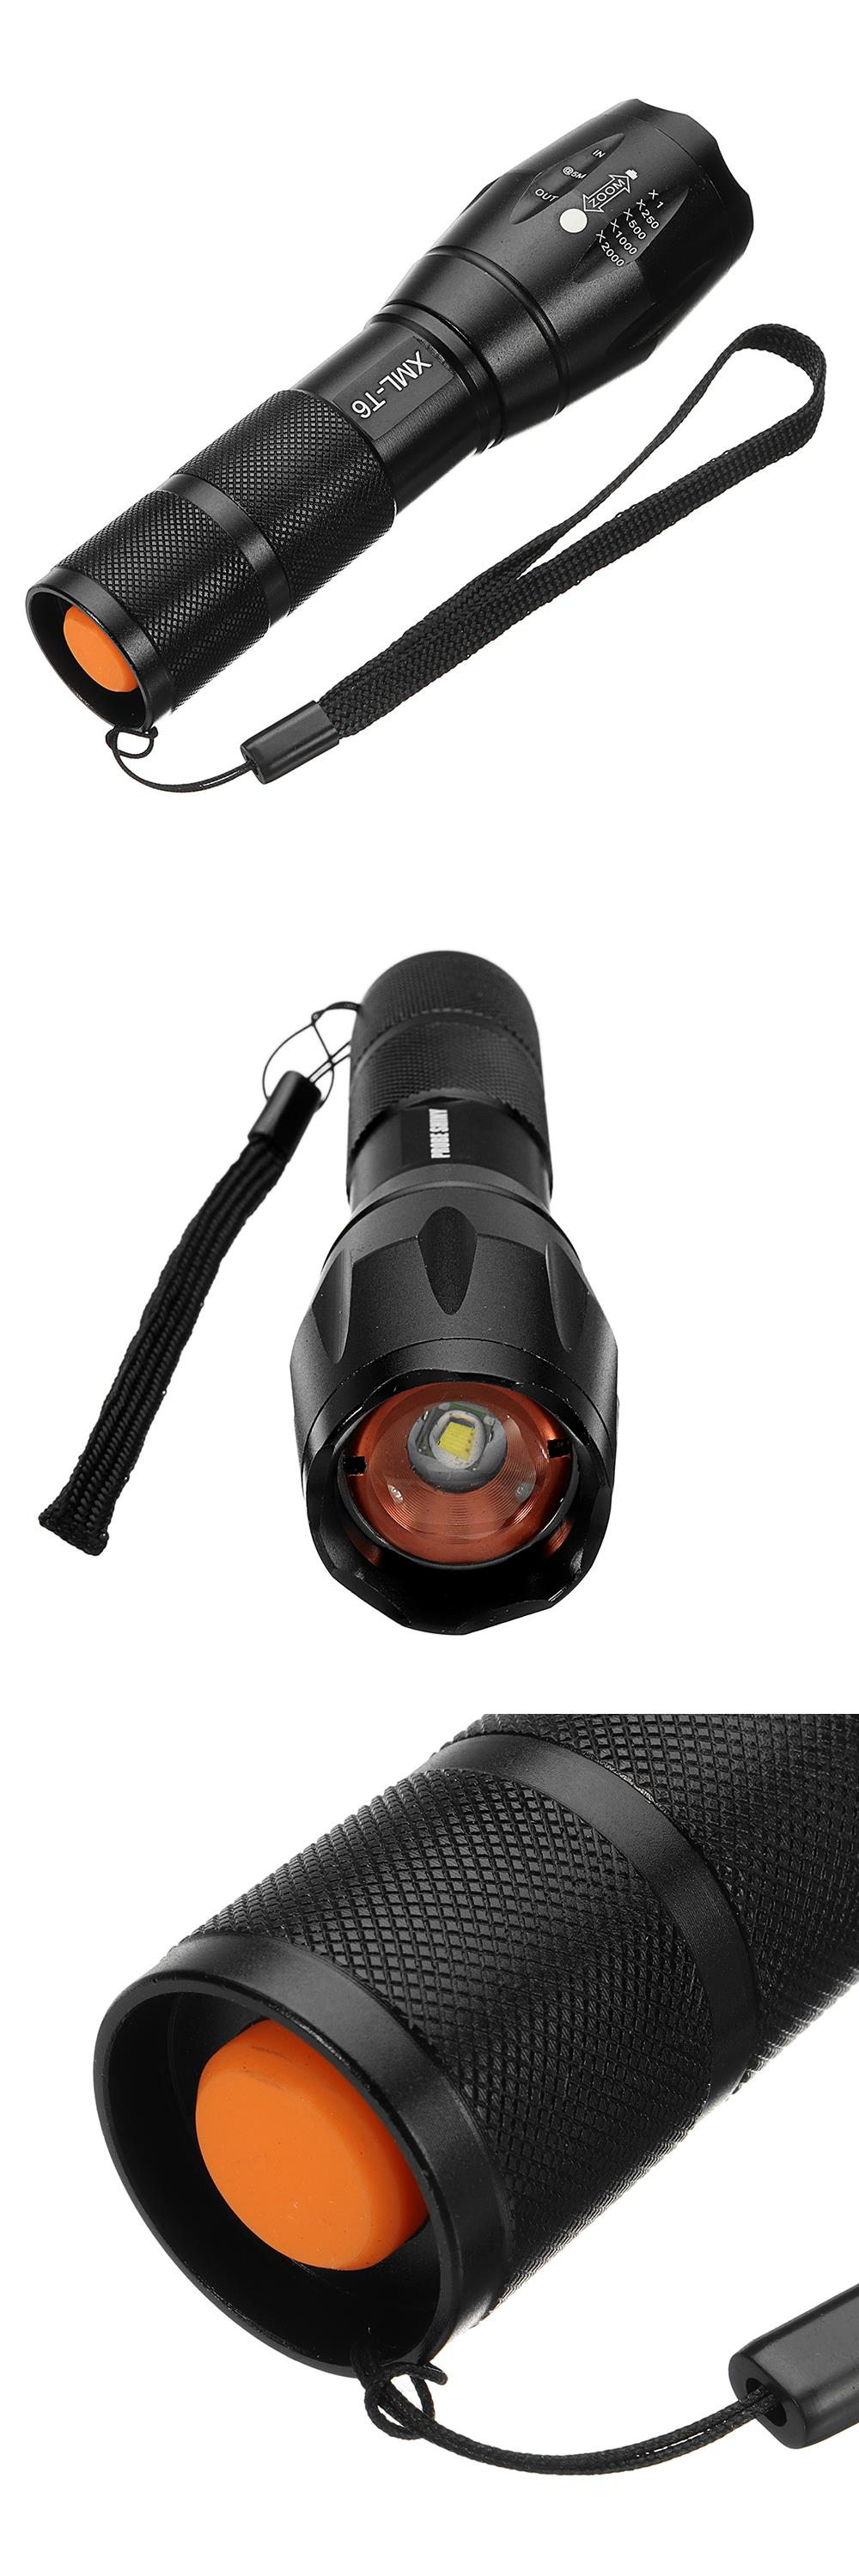 XANES A100 T6 800Lumens 5Modes Brightness Zoomable Tactical LED Flashlight Suit + Charger + Battery Charger